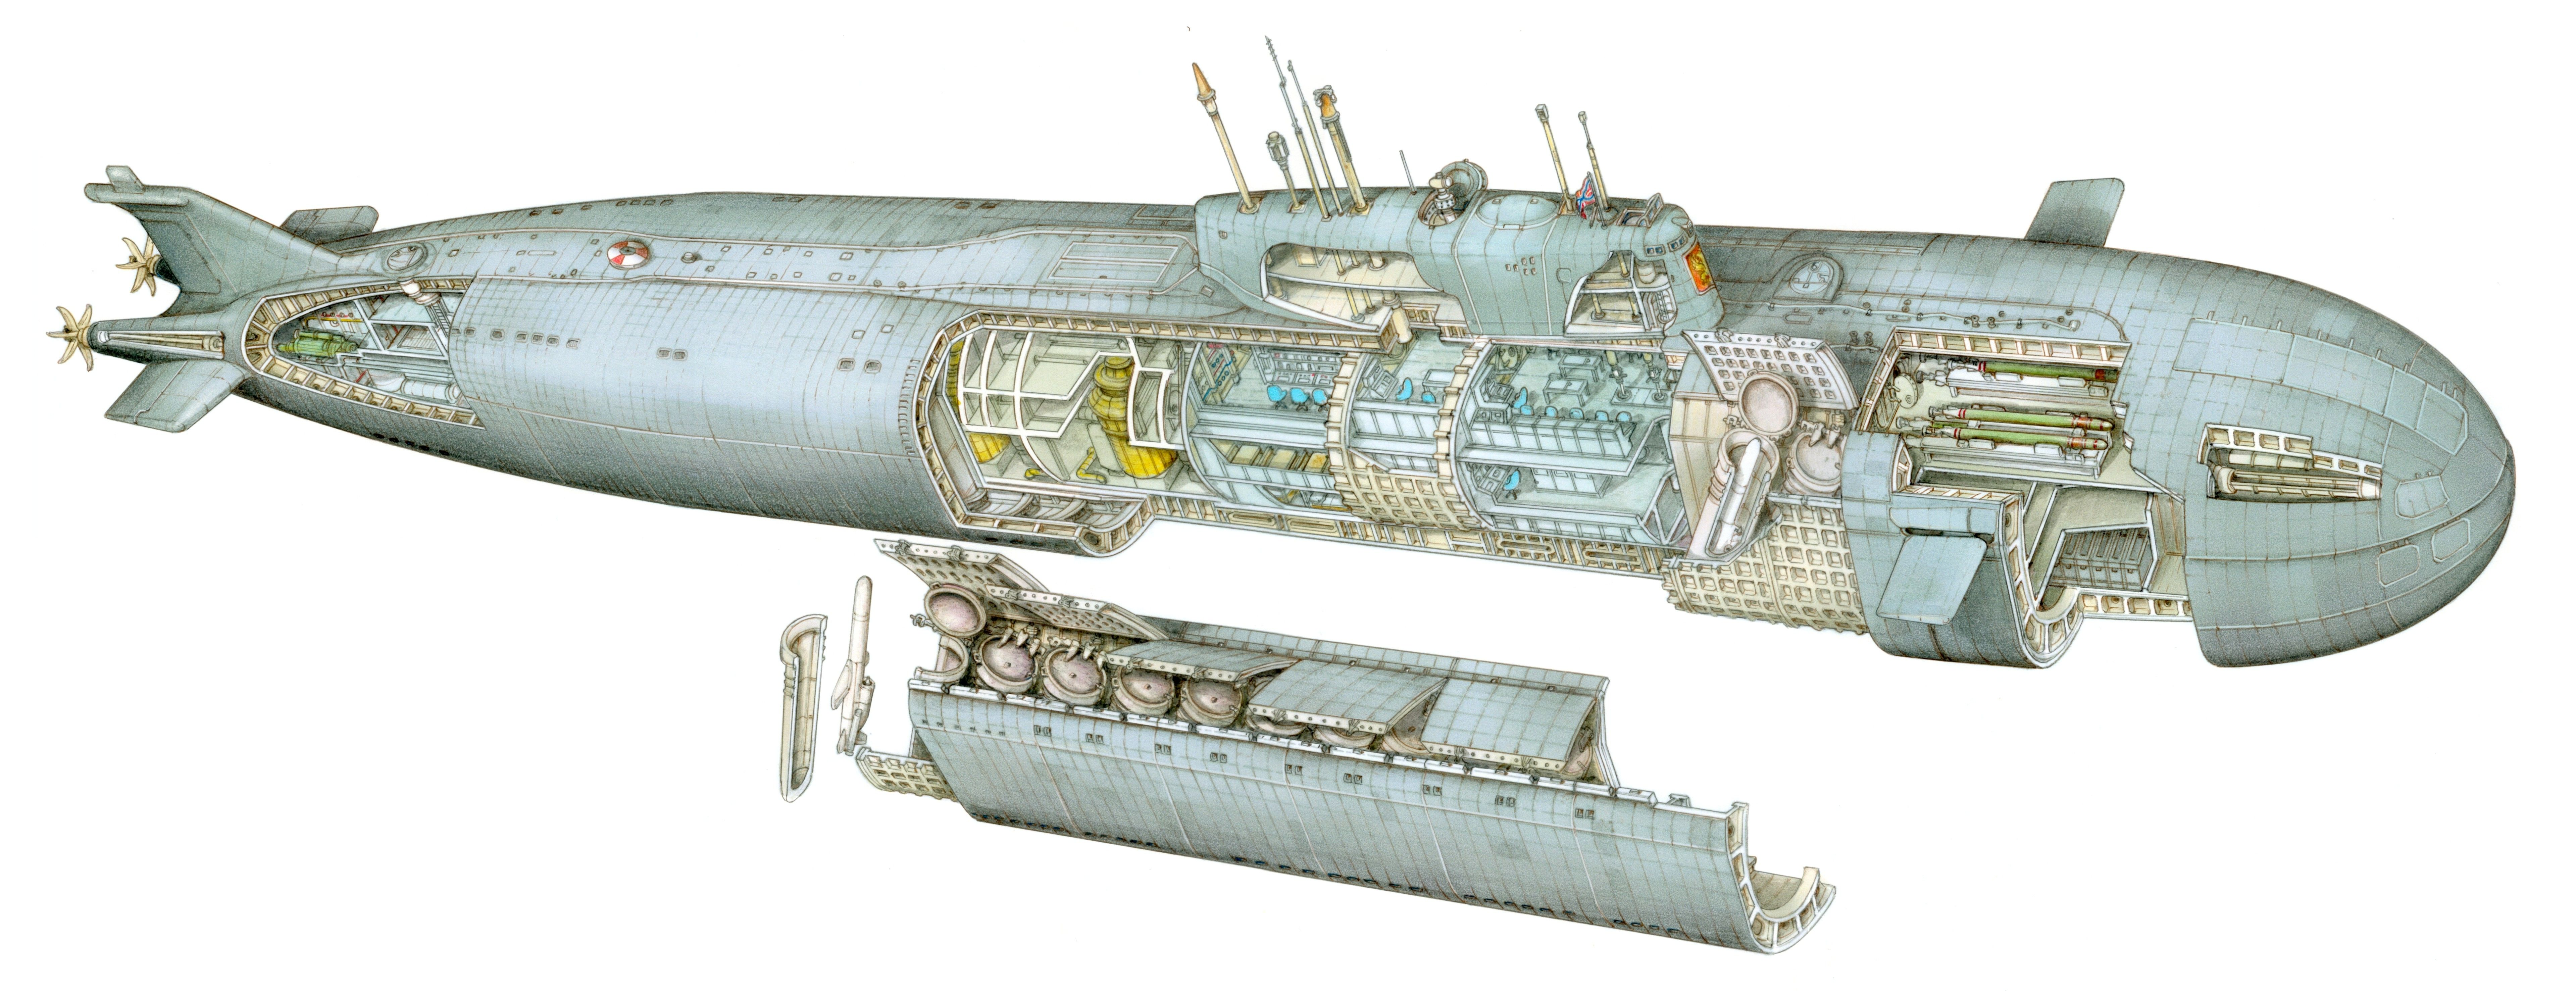 ohio class submarine diagram 4 wire 220 volt wiring kursk nuclear  pinteres